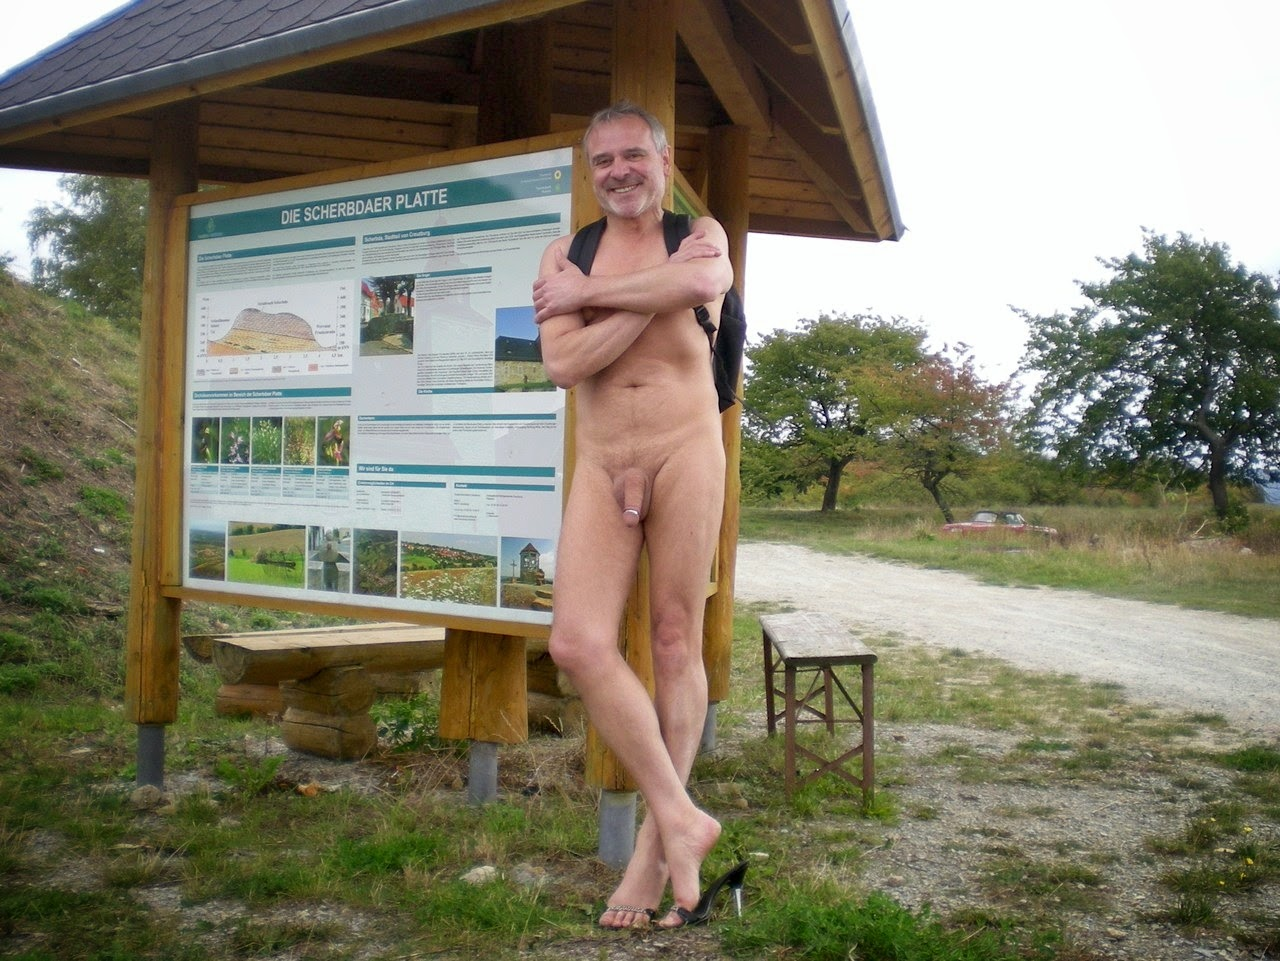 hiking georgia nude